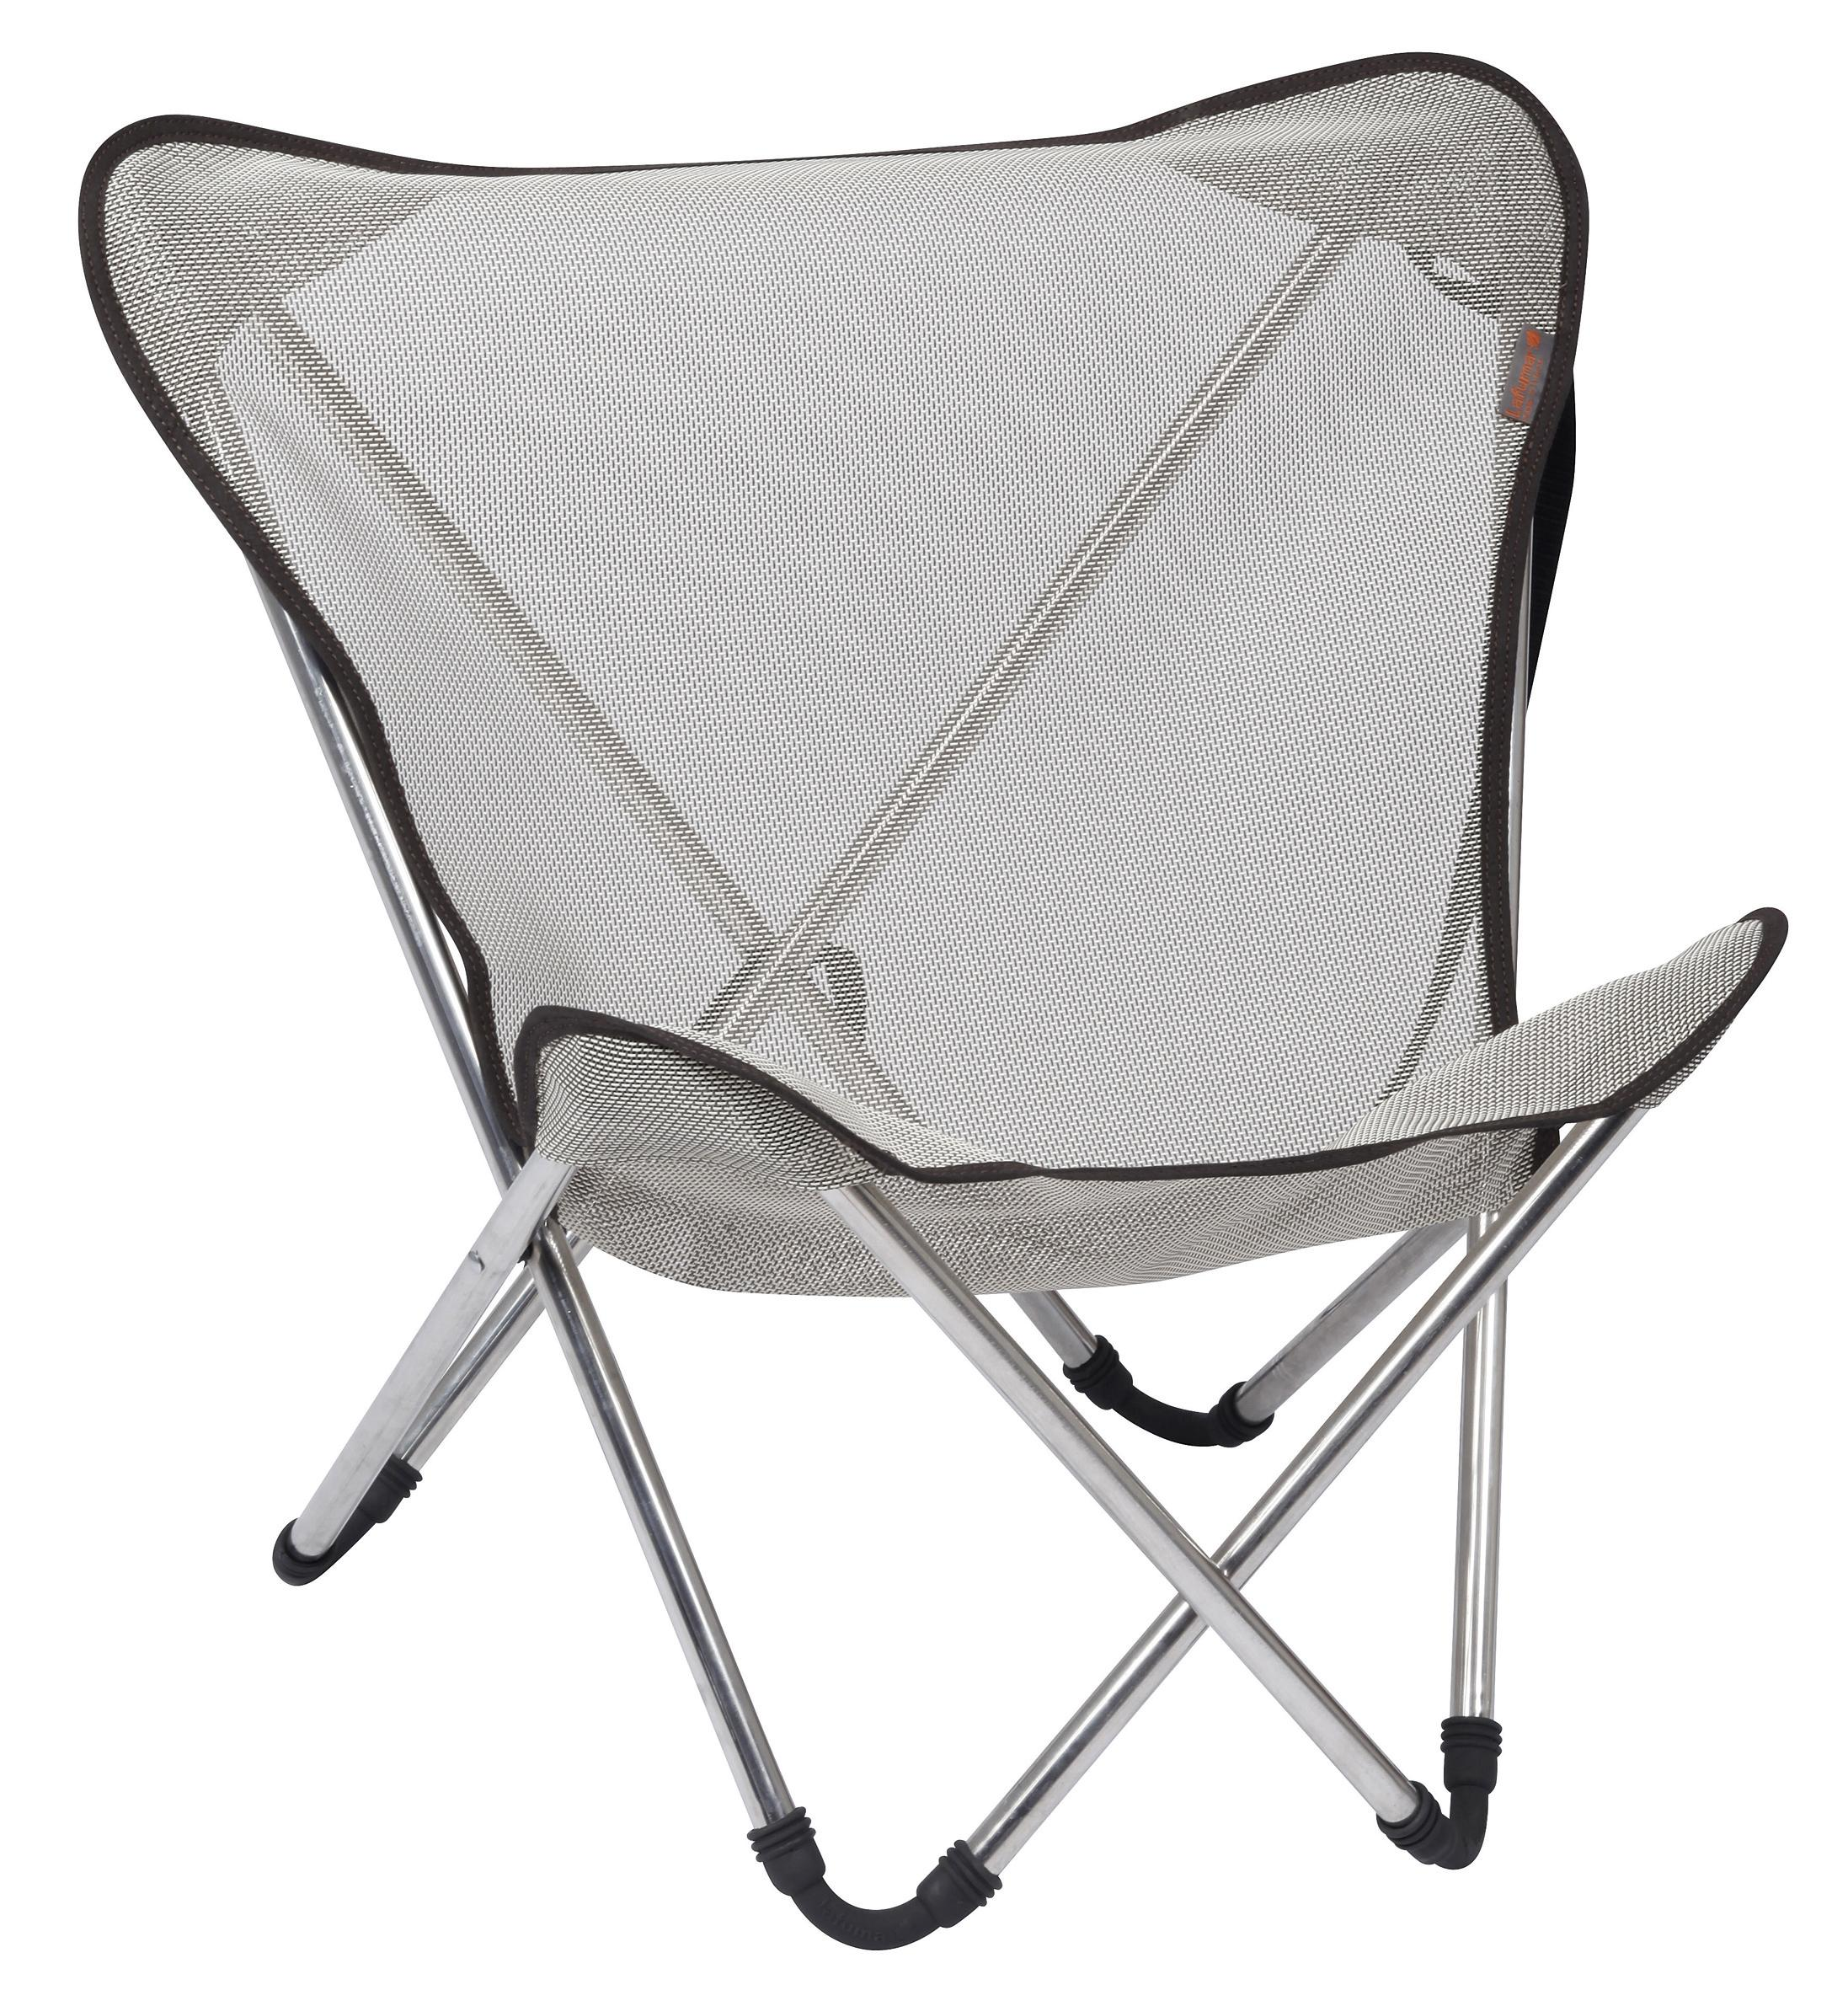 lafuma pop up chair space saver kitchen table and chairs foto mesa plegable easy camp calais blanco 554090